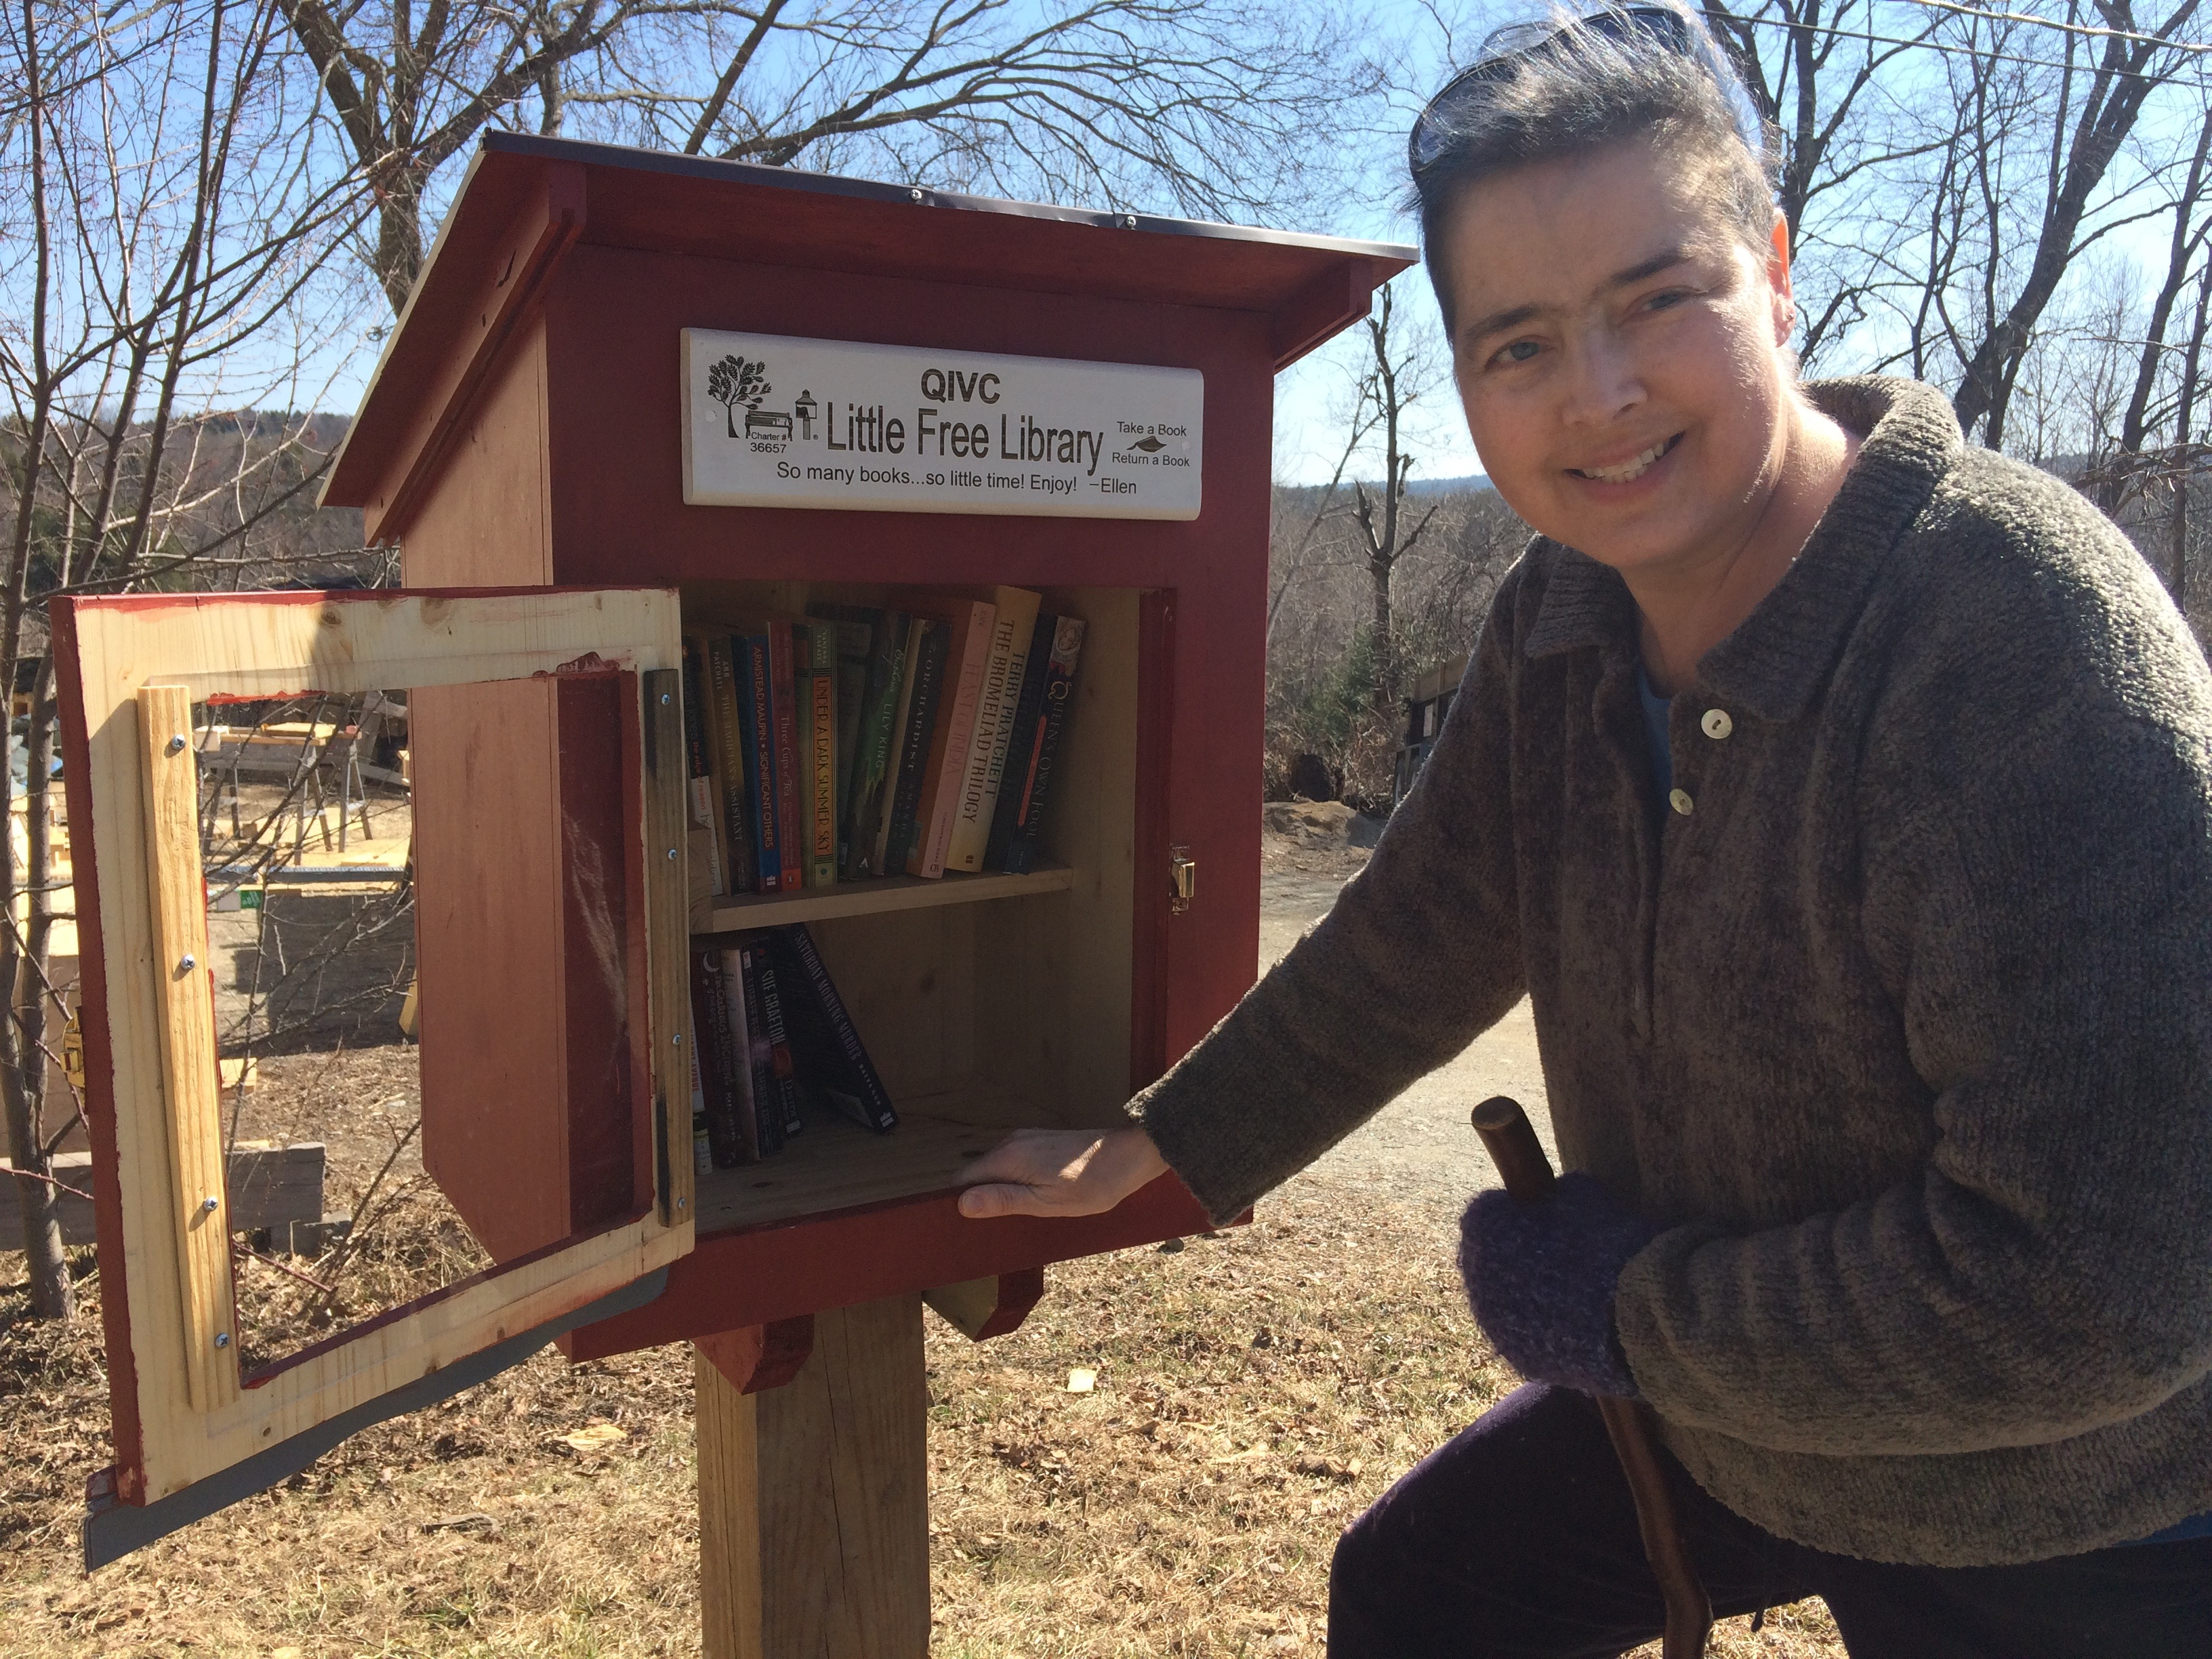 Little Free Library with signage!